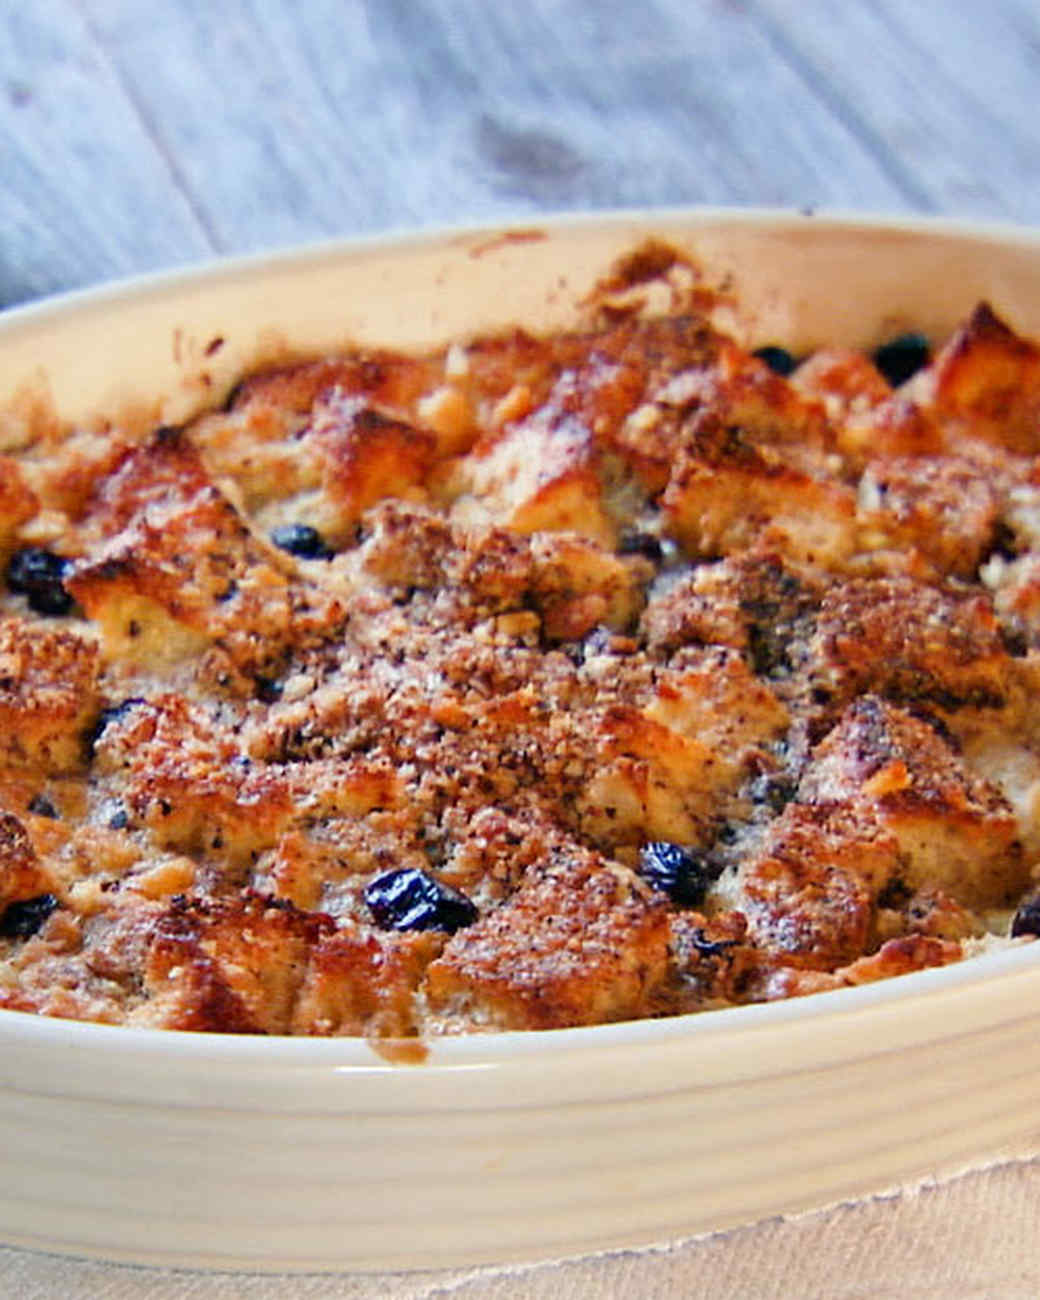 mh_1046_bread_pudding.jpg